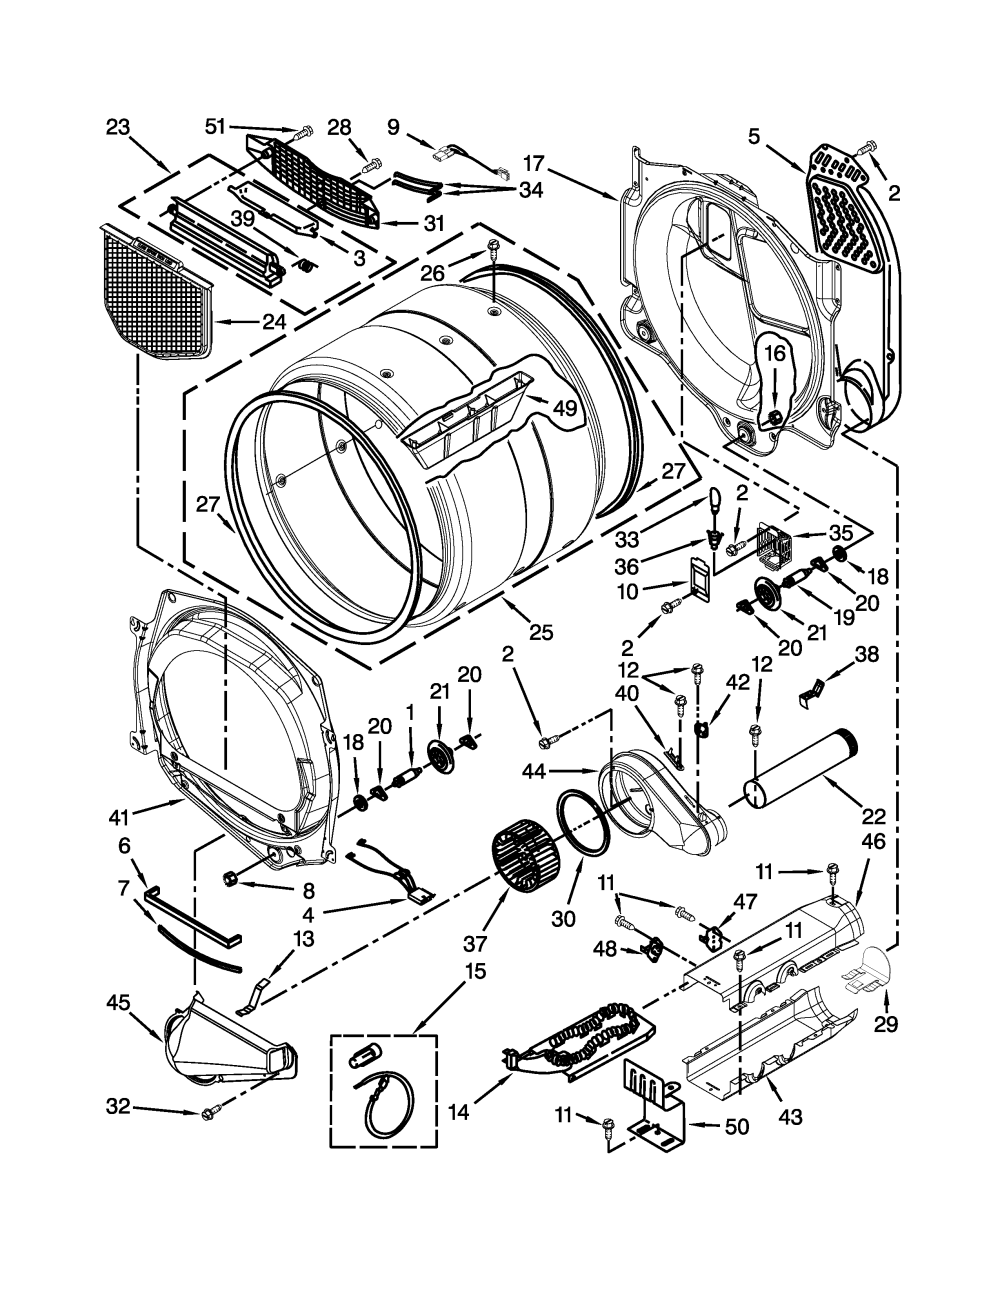 medium resolution of whirlpool duet dryer wiring schematic wiring diagram toolbox machine parts diagram besides whirlpool cabrio dryer parts